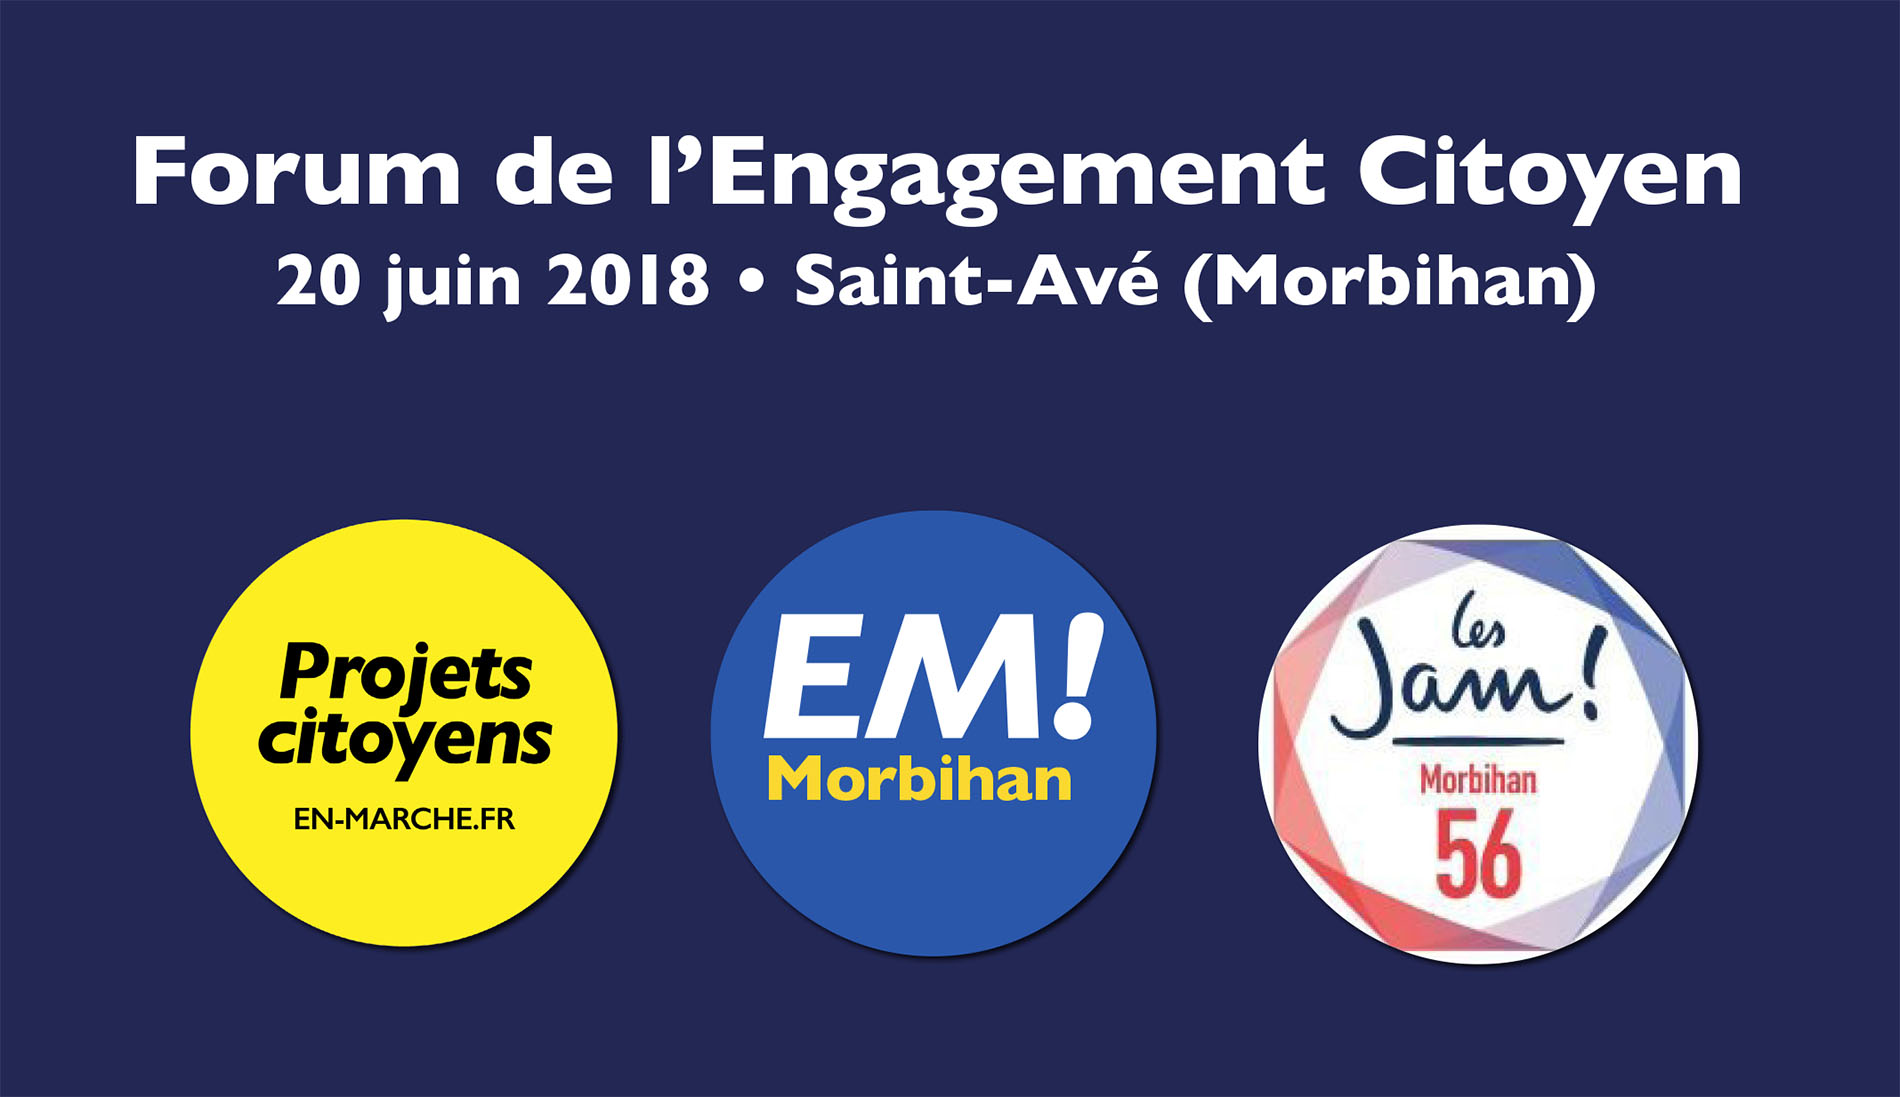 Forum départemental de l'Engagement Citoyen à St-Avé